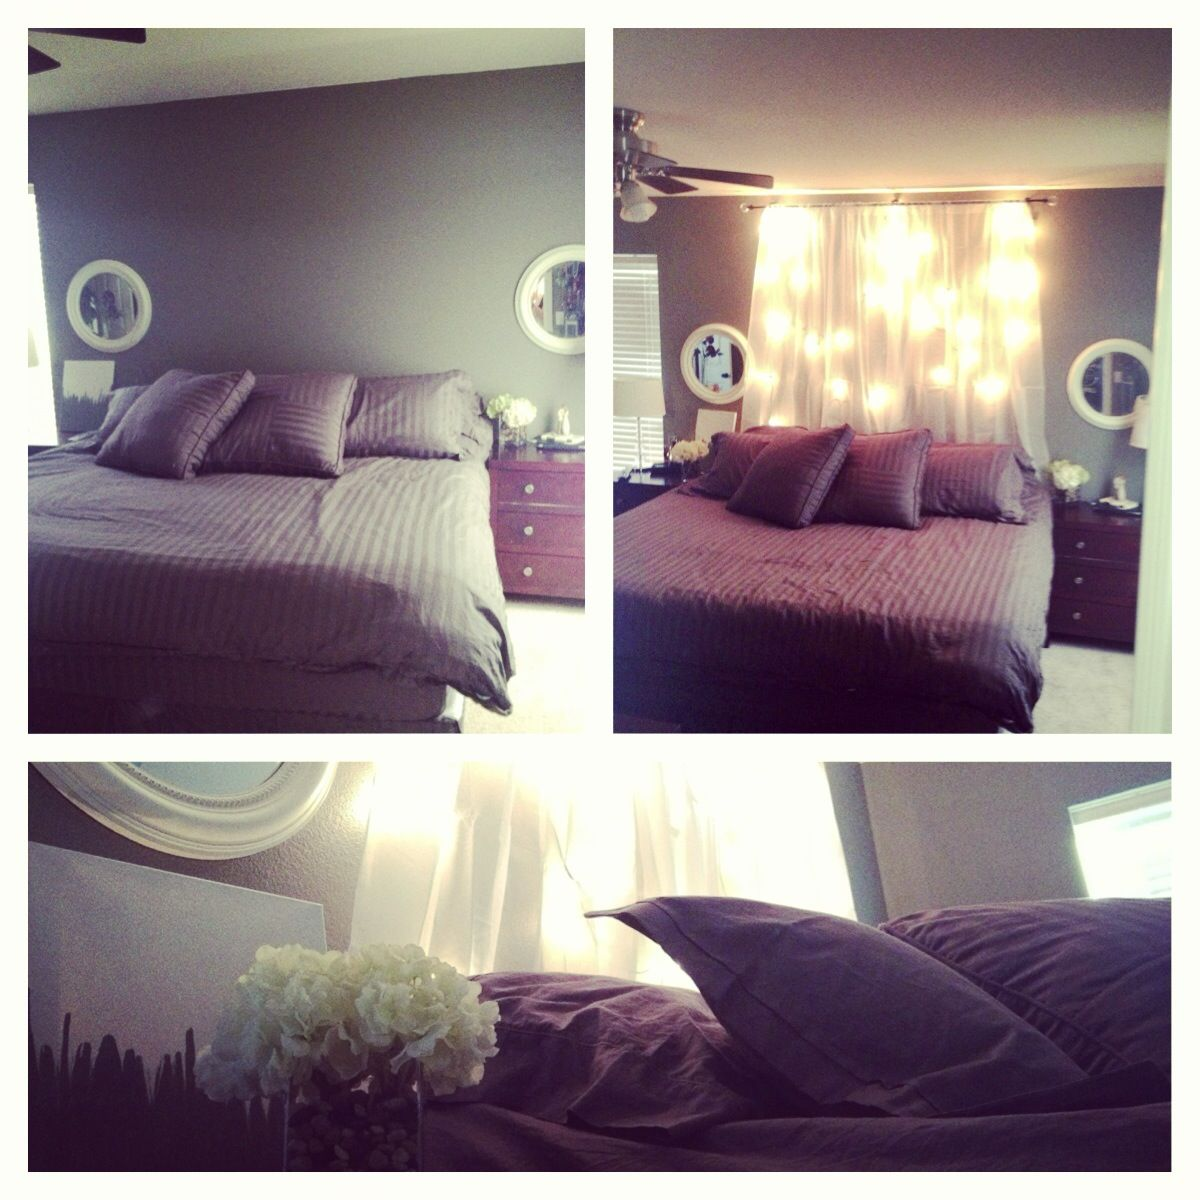 Bed backdrop instead of headboard projects brought to - What to use instead of a headboard ...